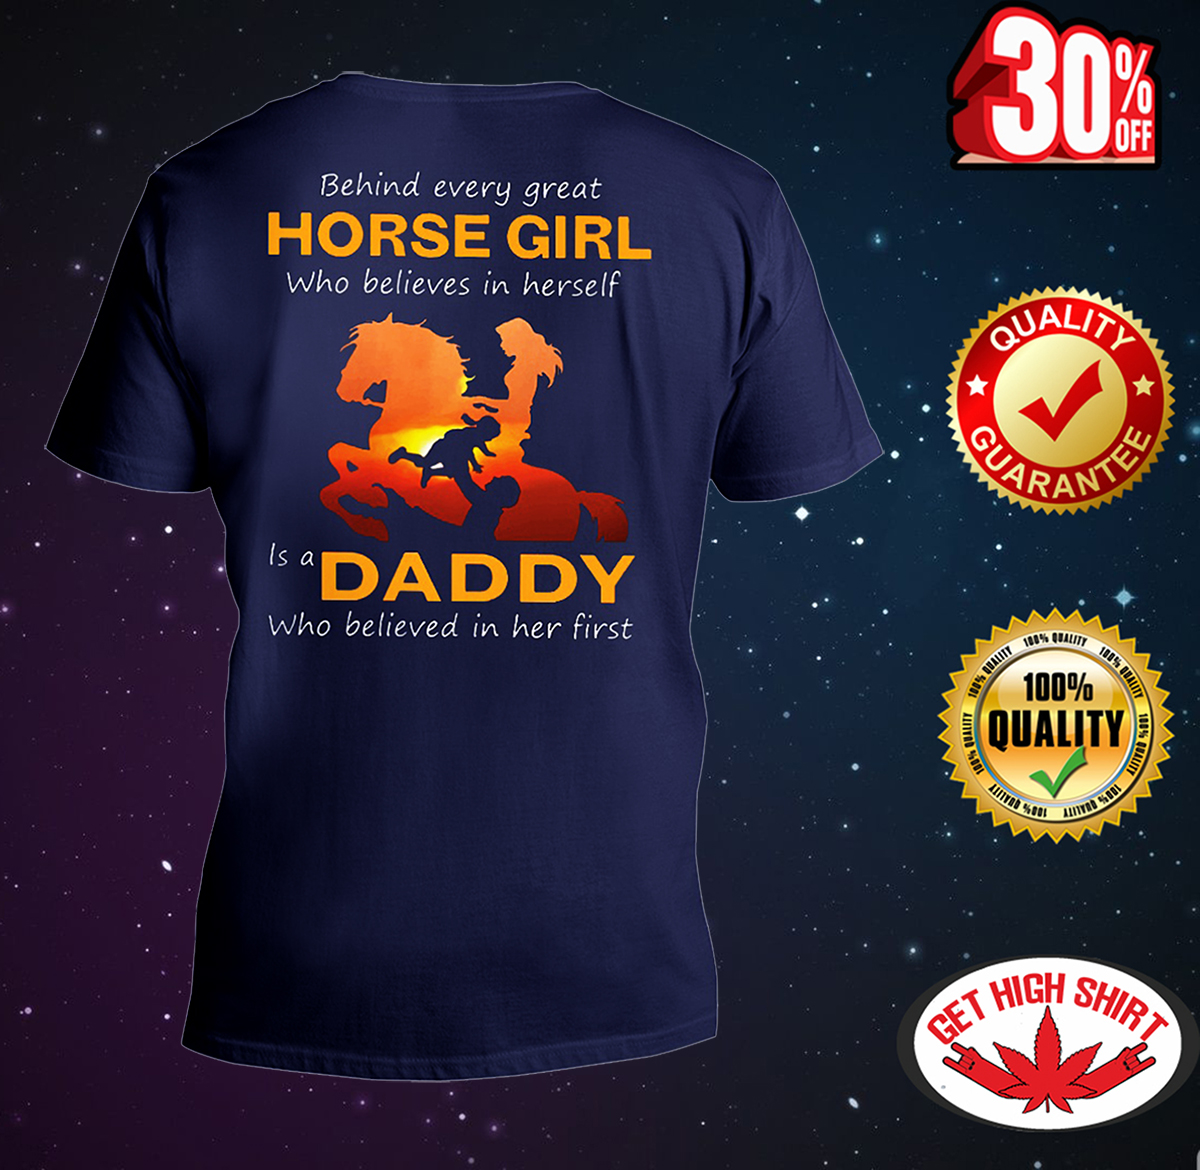 Behind every great horse girl who believes in herself is a daddy who believed in her first v-neck t-shirt